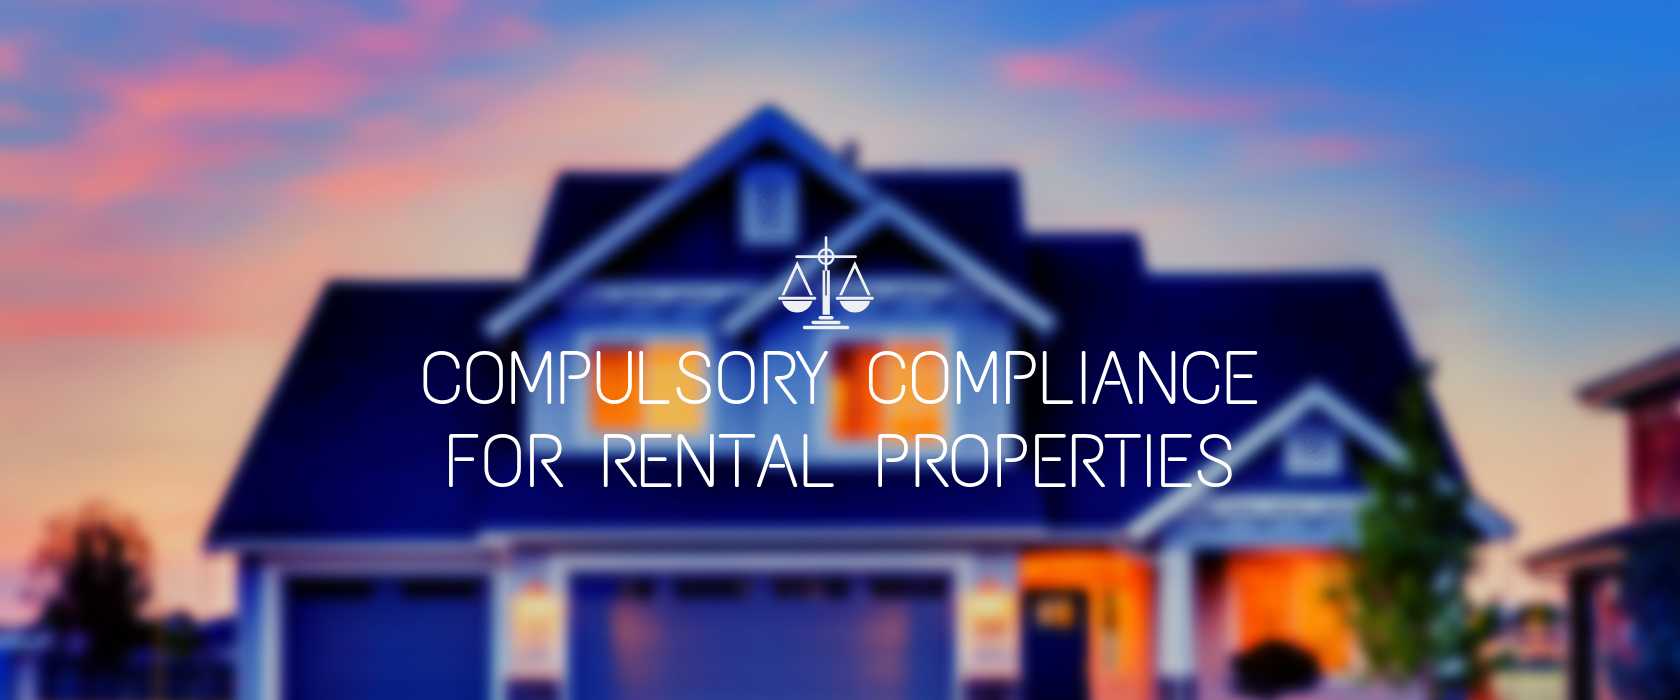 Compulsory Compliance for Rental Properties WA